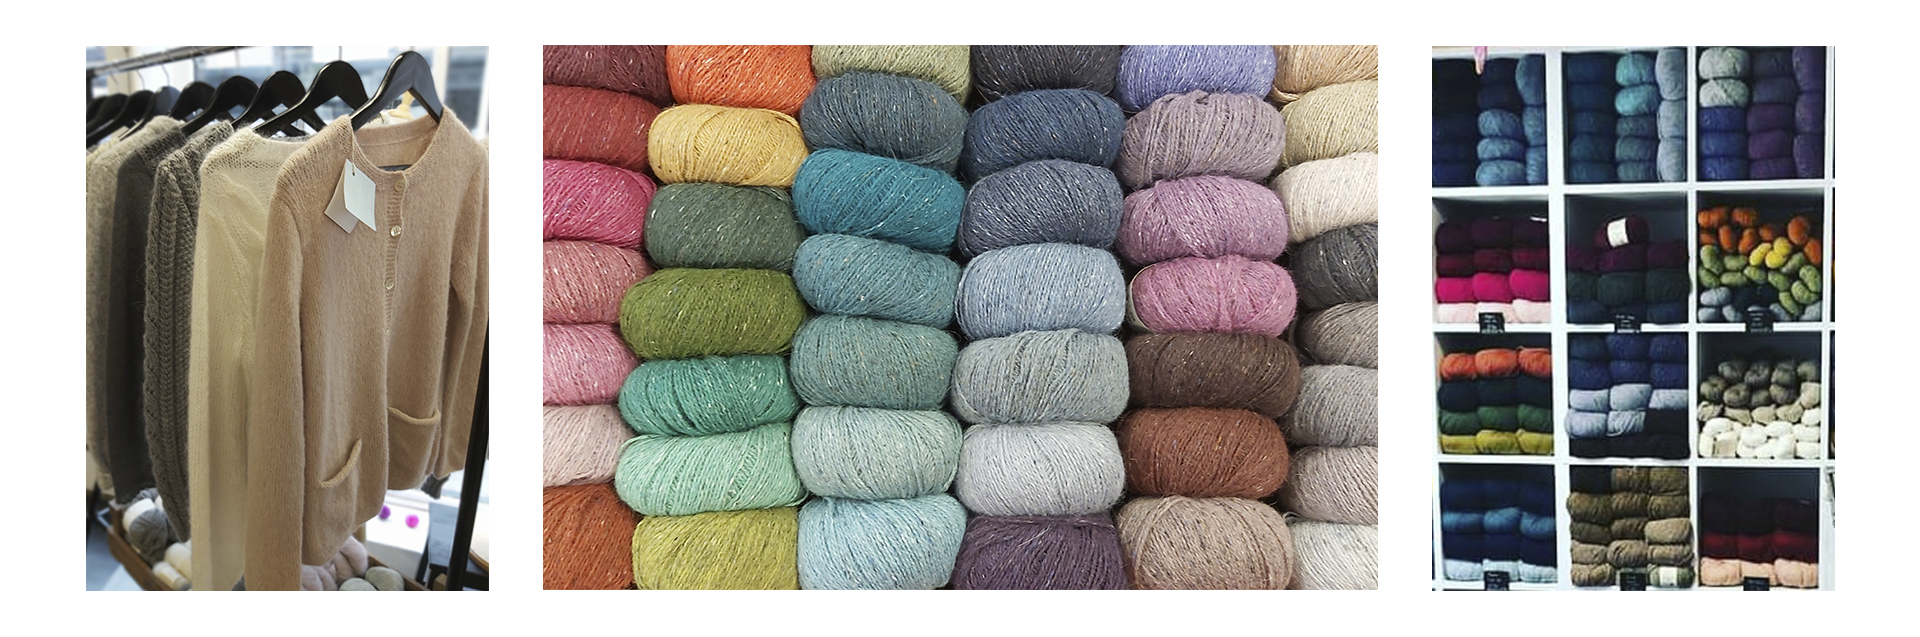 Based in the heart of the beautiful cathedral city of Ely, we're a small independent business offering a gorgeous selection of yarn and fabrics, along with a variety of haberdashery and crafting supplies. We have a sister shop in Bury St Edmunds and also ship worldwide via our website.